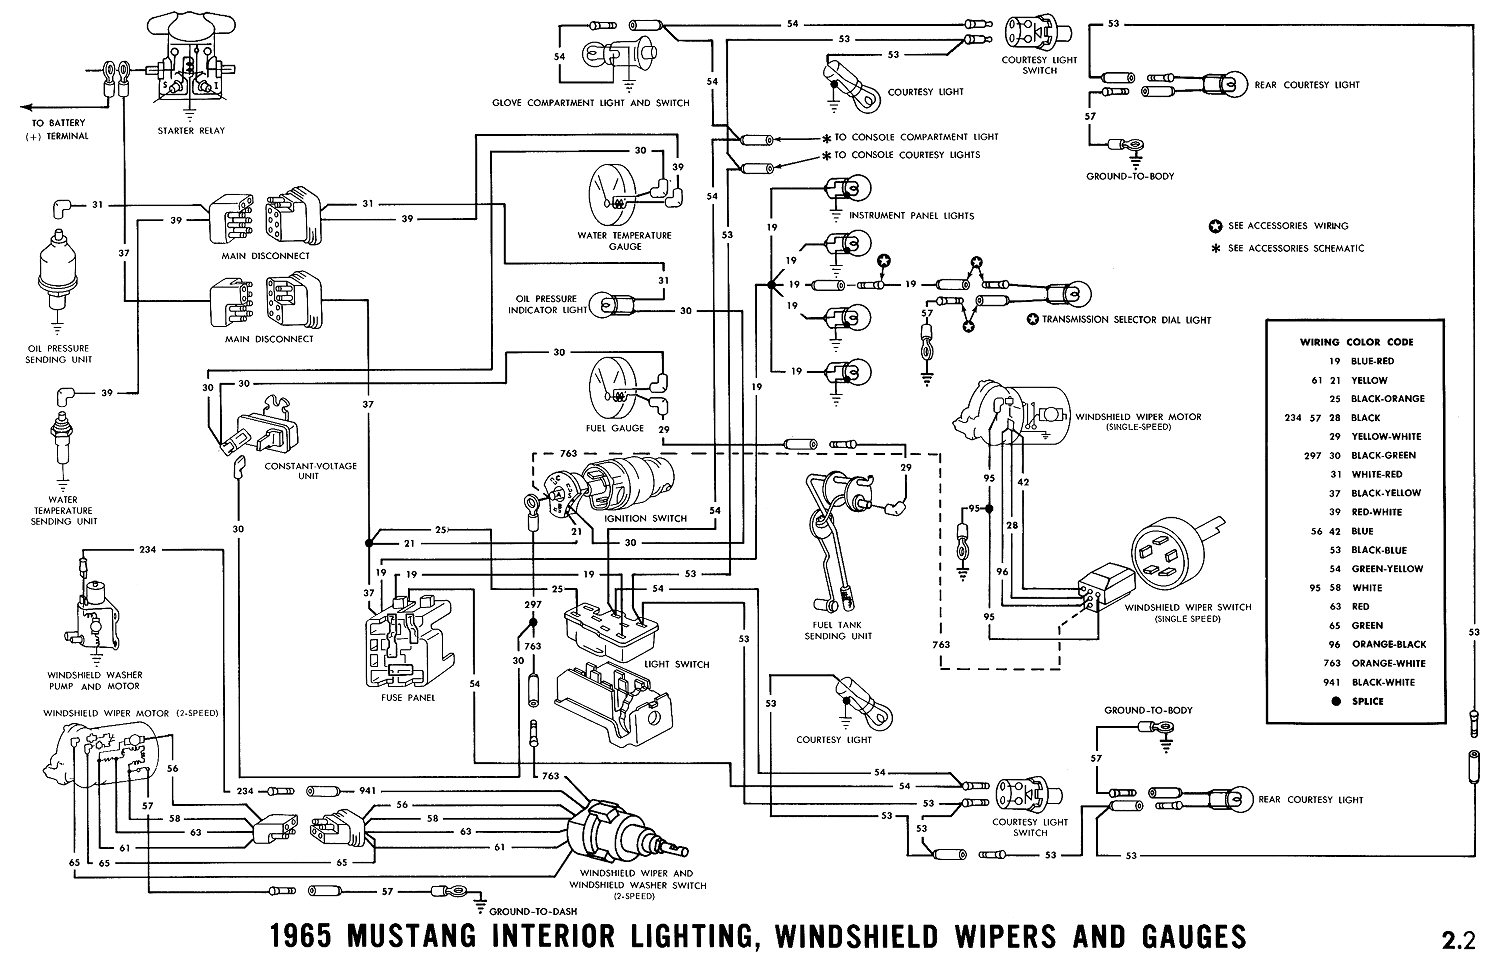 1969 Corvette Wiring Diagram Temperature Gauge Schematics 1977 Chevrolet Impala 1966 Mustang Pdf Antenna 1965